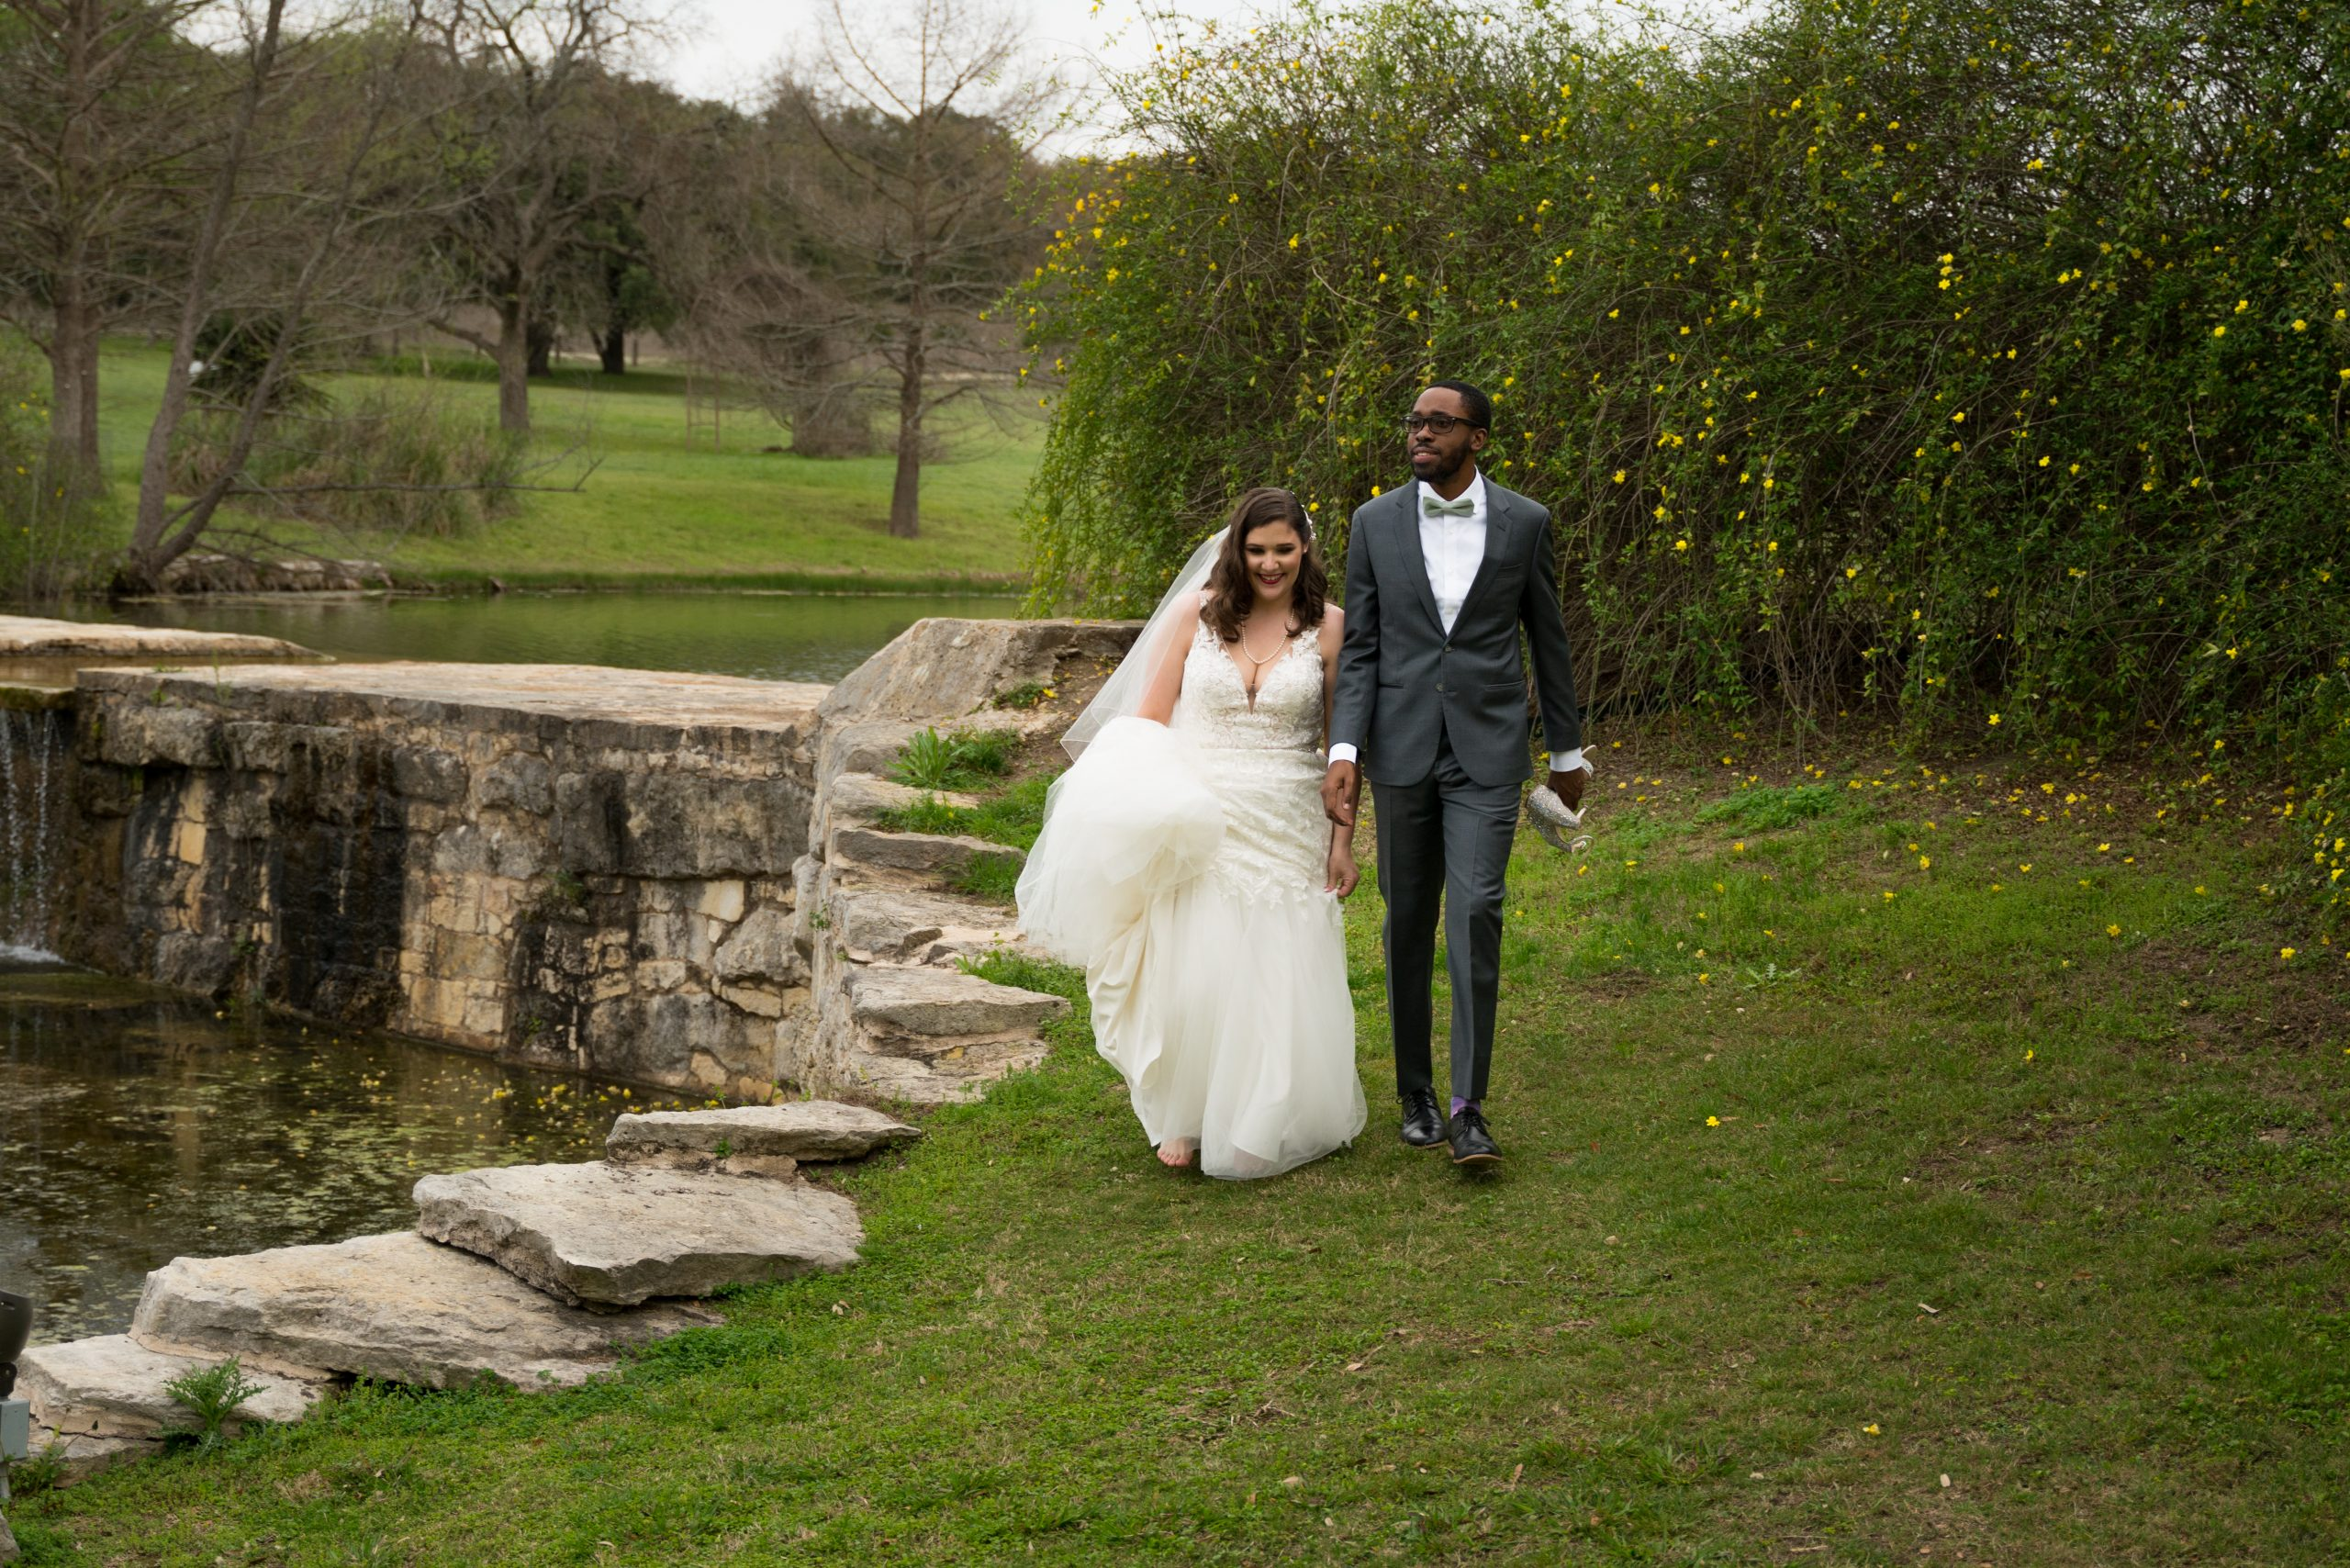 Elizabeth+Derek - Bride and Groom along the edge of the pond in March